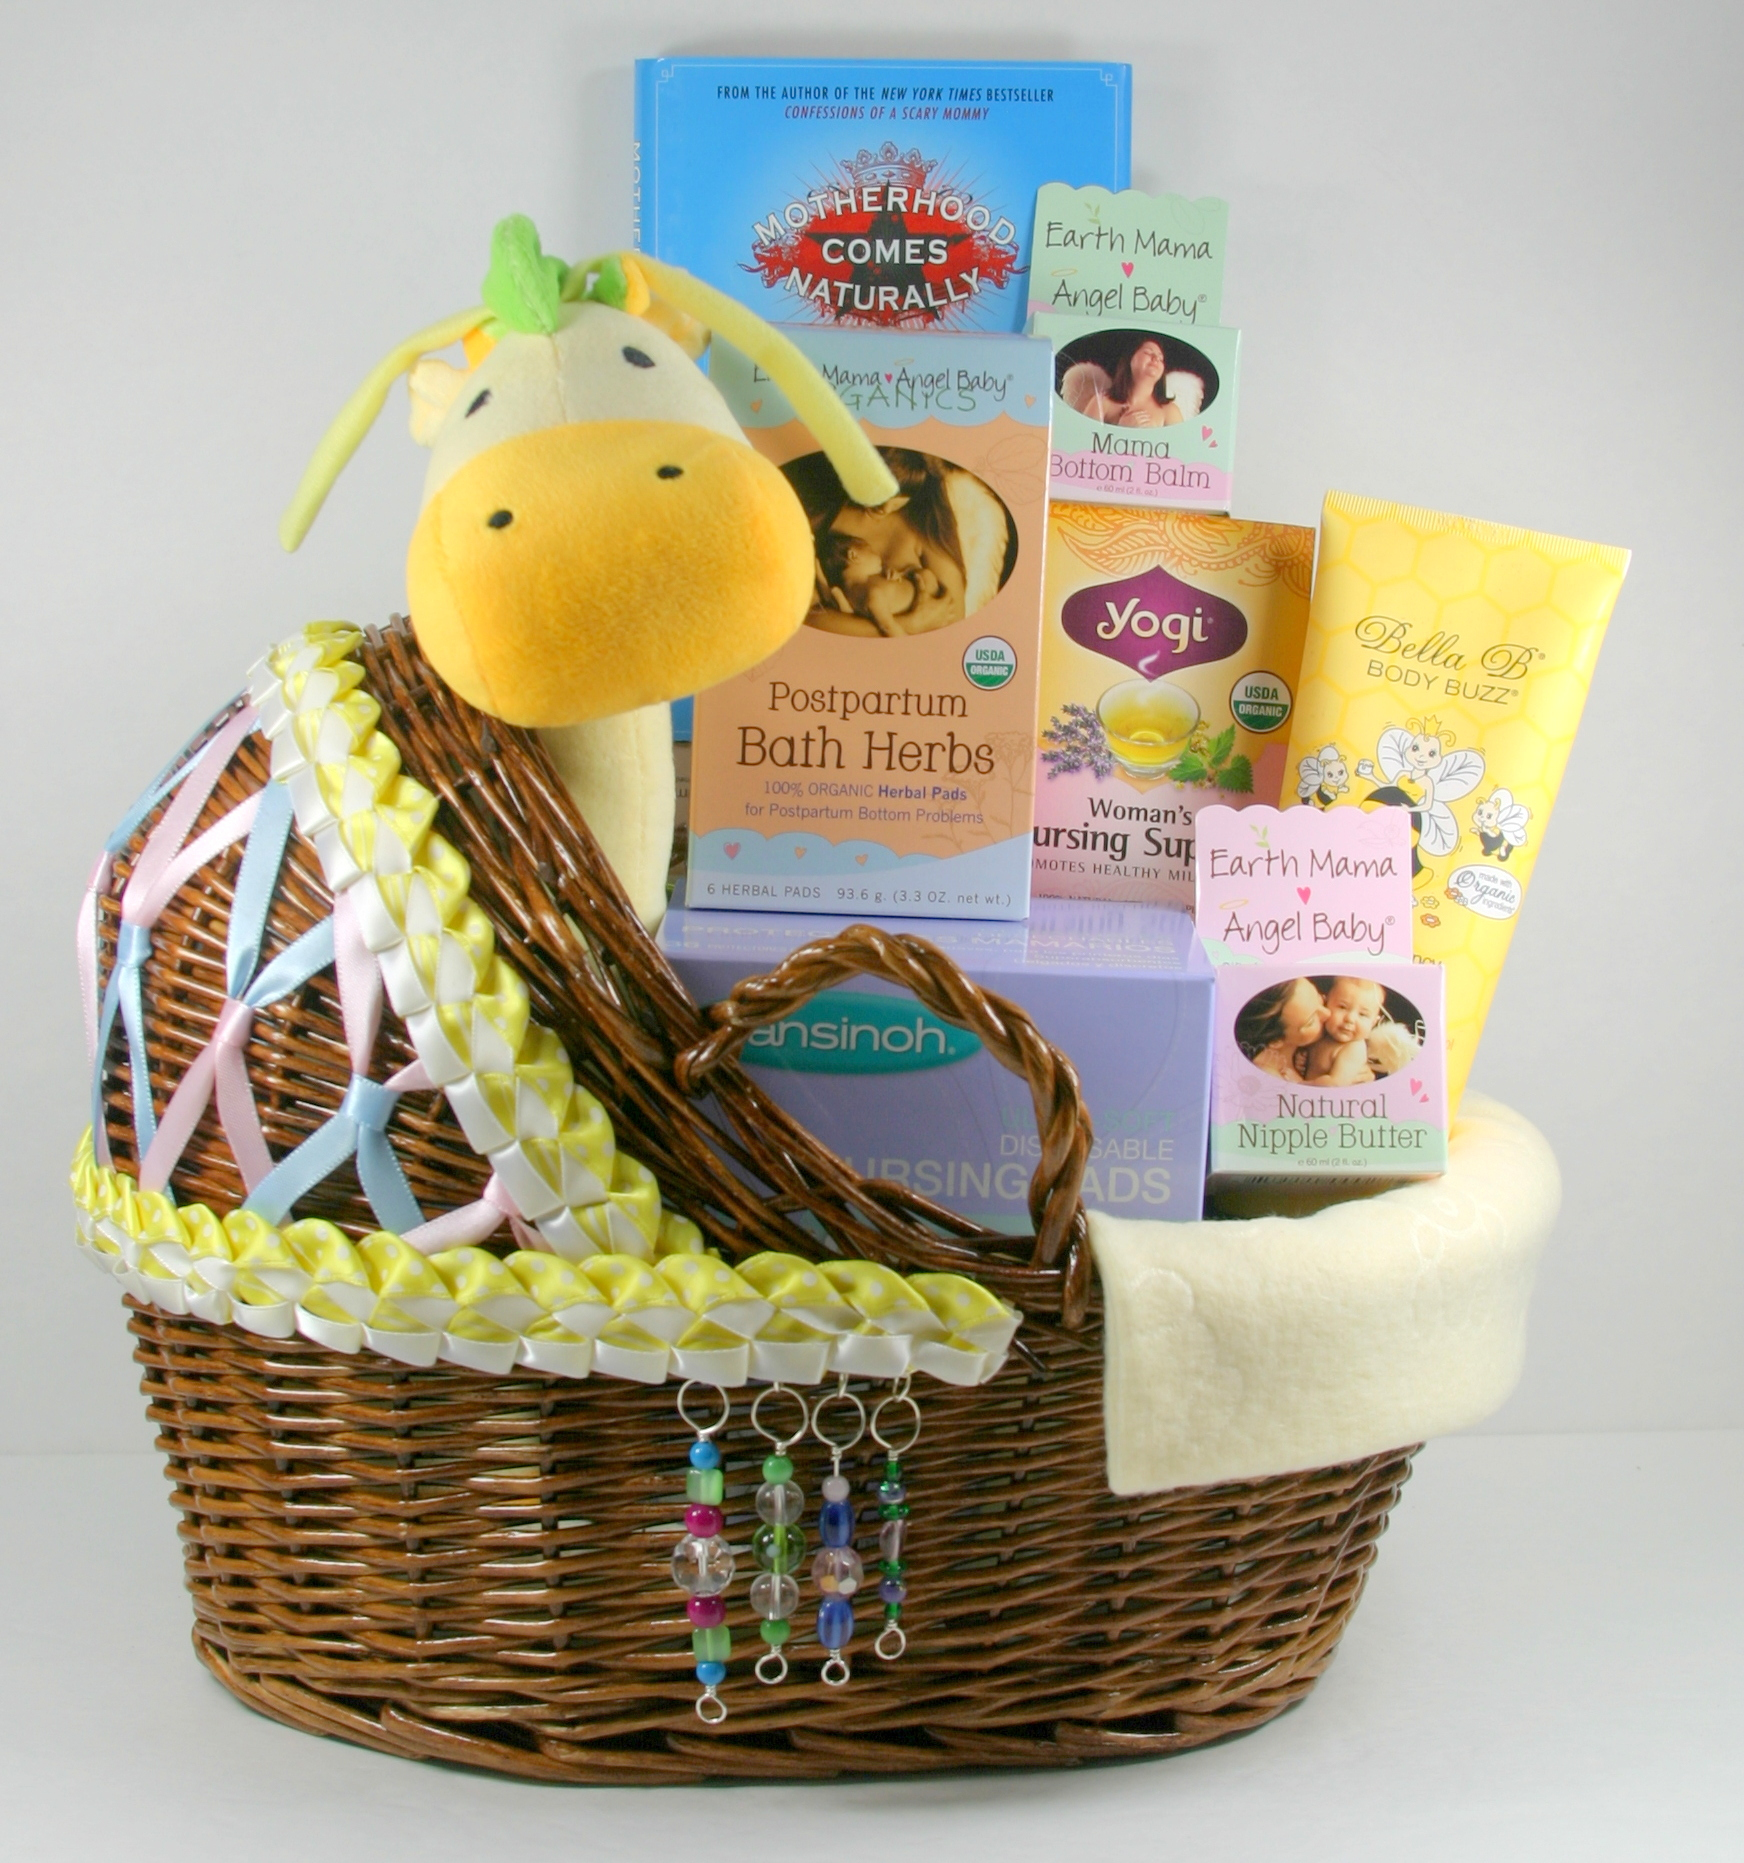 After pregnancy new mom care package with hand decorated bassinet after pregnancy new mom care package with hand decorated bassinet bask wild moon designs negle Image collections